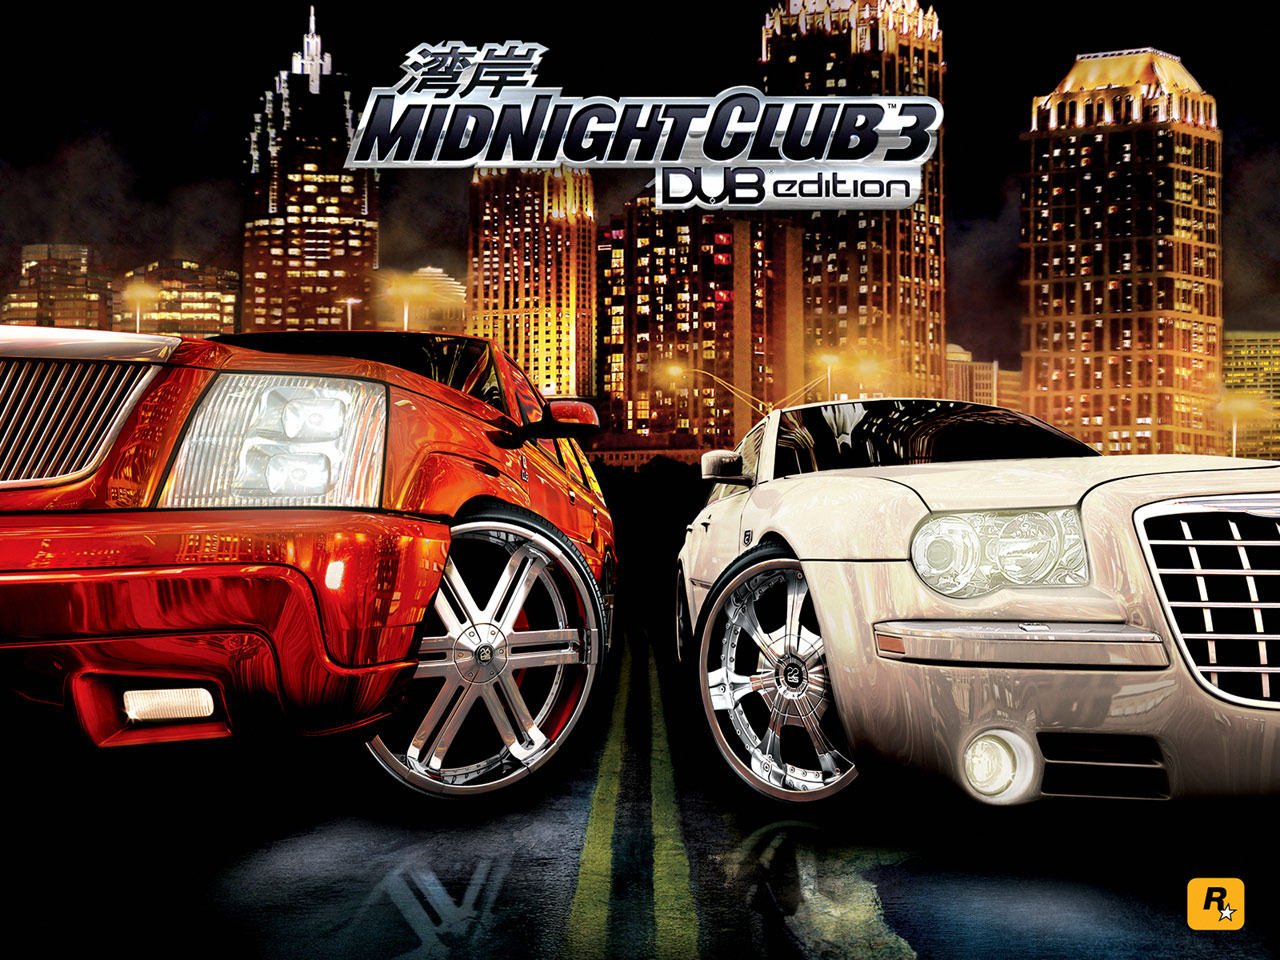 Download Game Midnight Club 3 Dub Edition Free